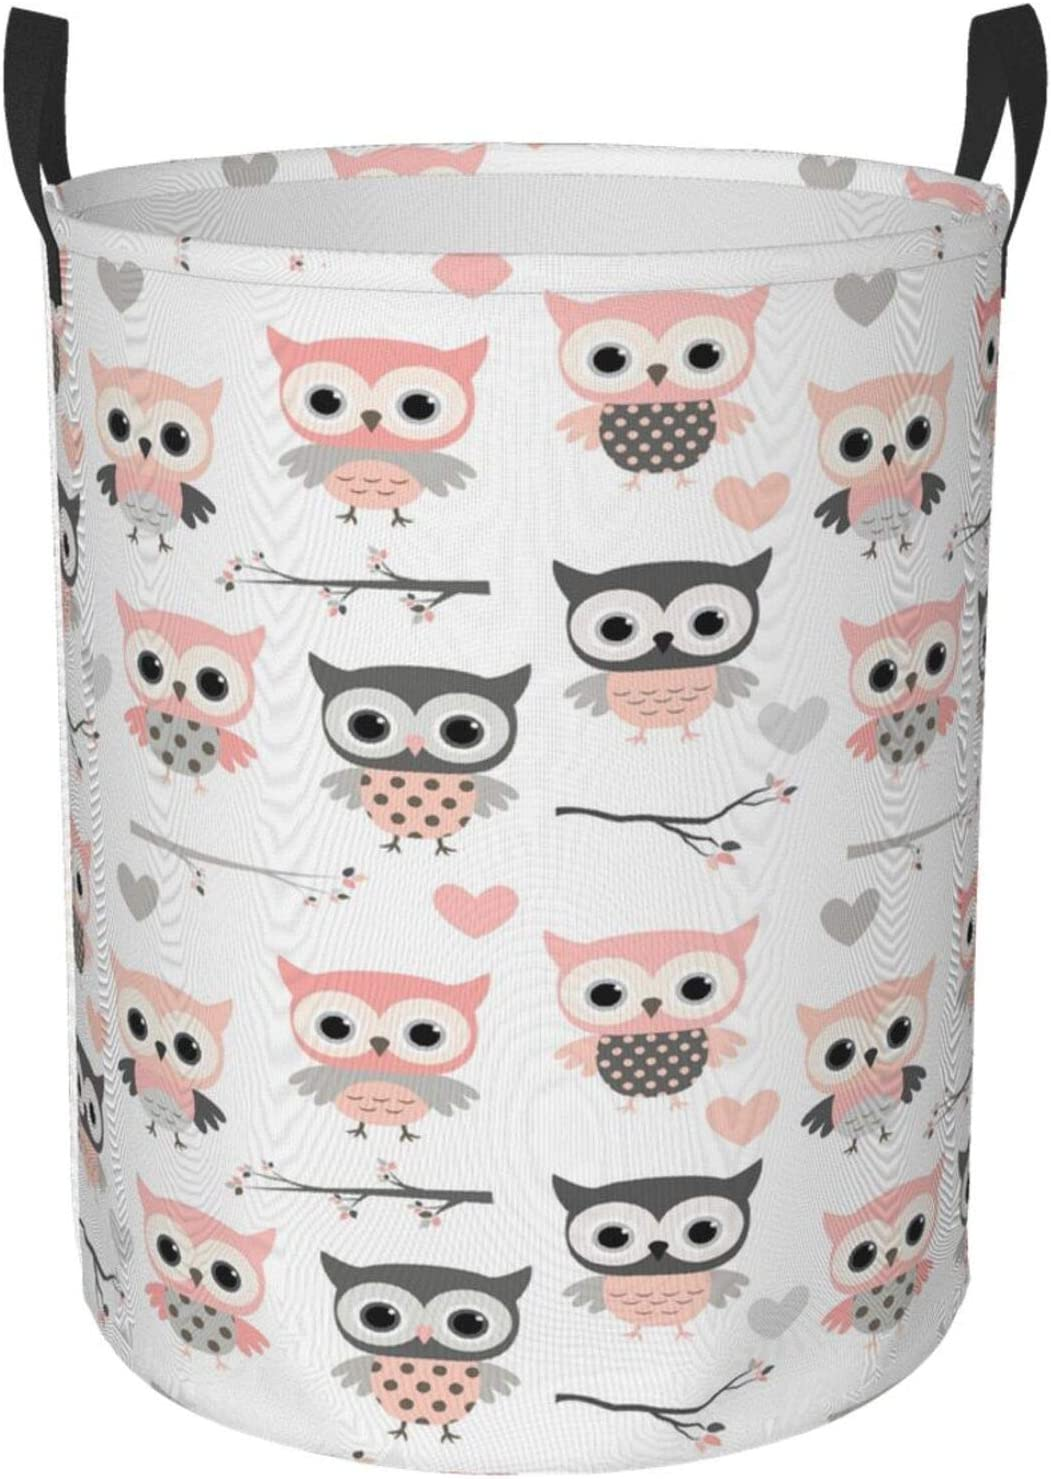 Foruidea Owl Laundry Basket low-pricing Free shipping anywhere in the nation Storage Hamper B Collapsible